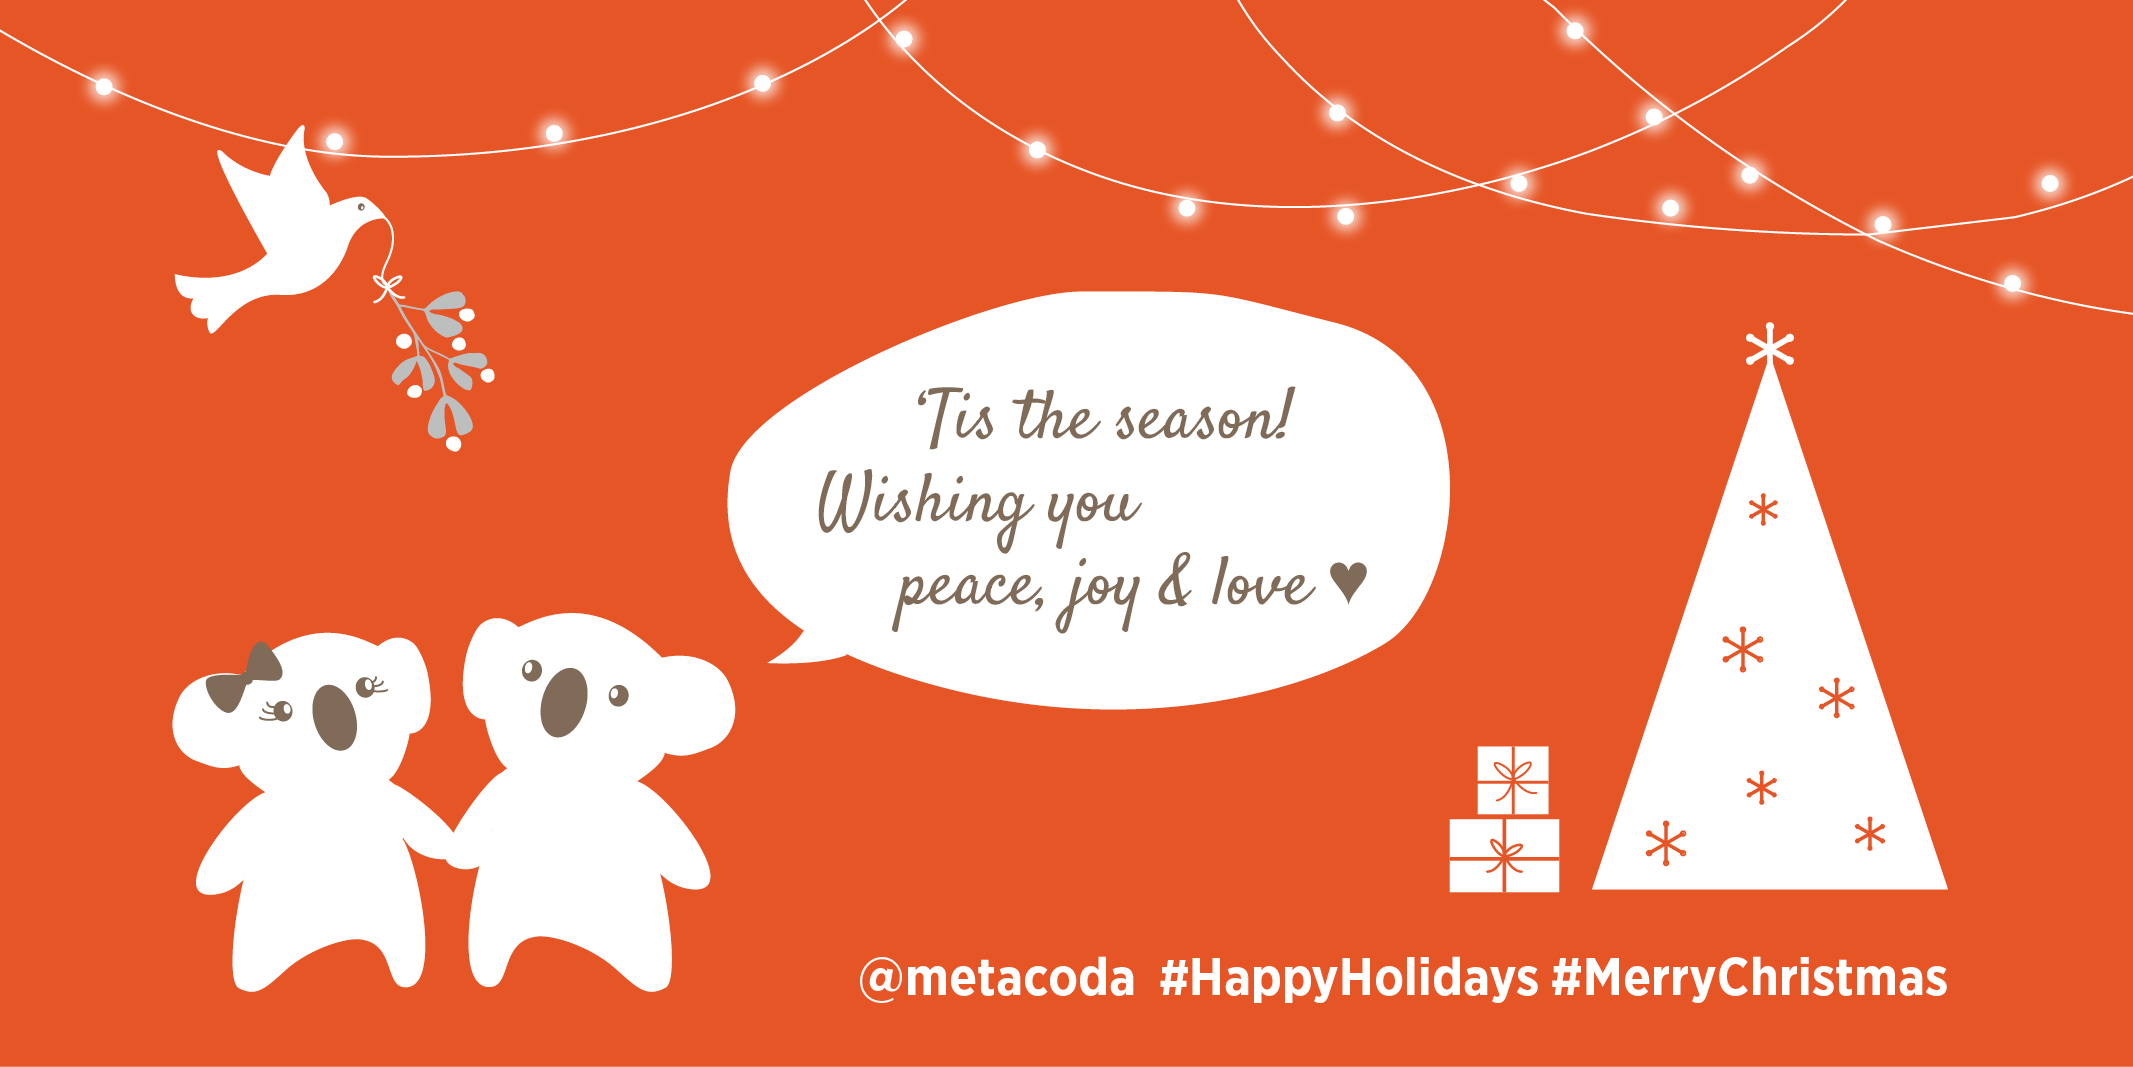 Metacoda Christmas 2017